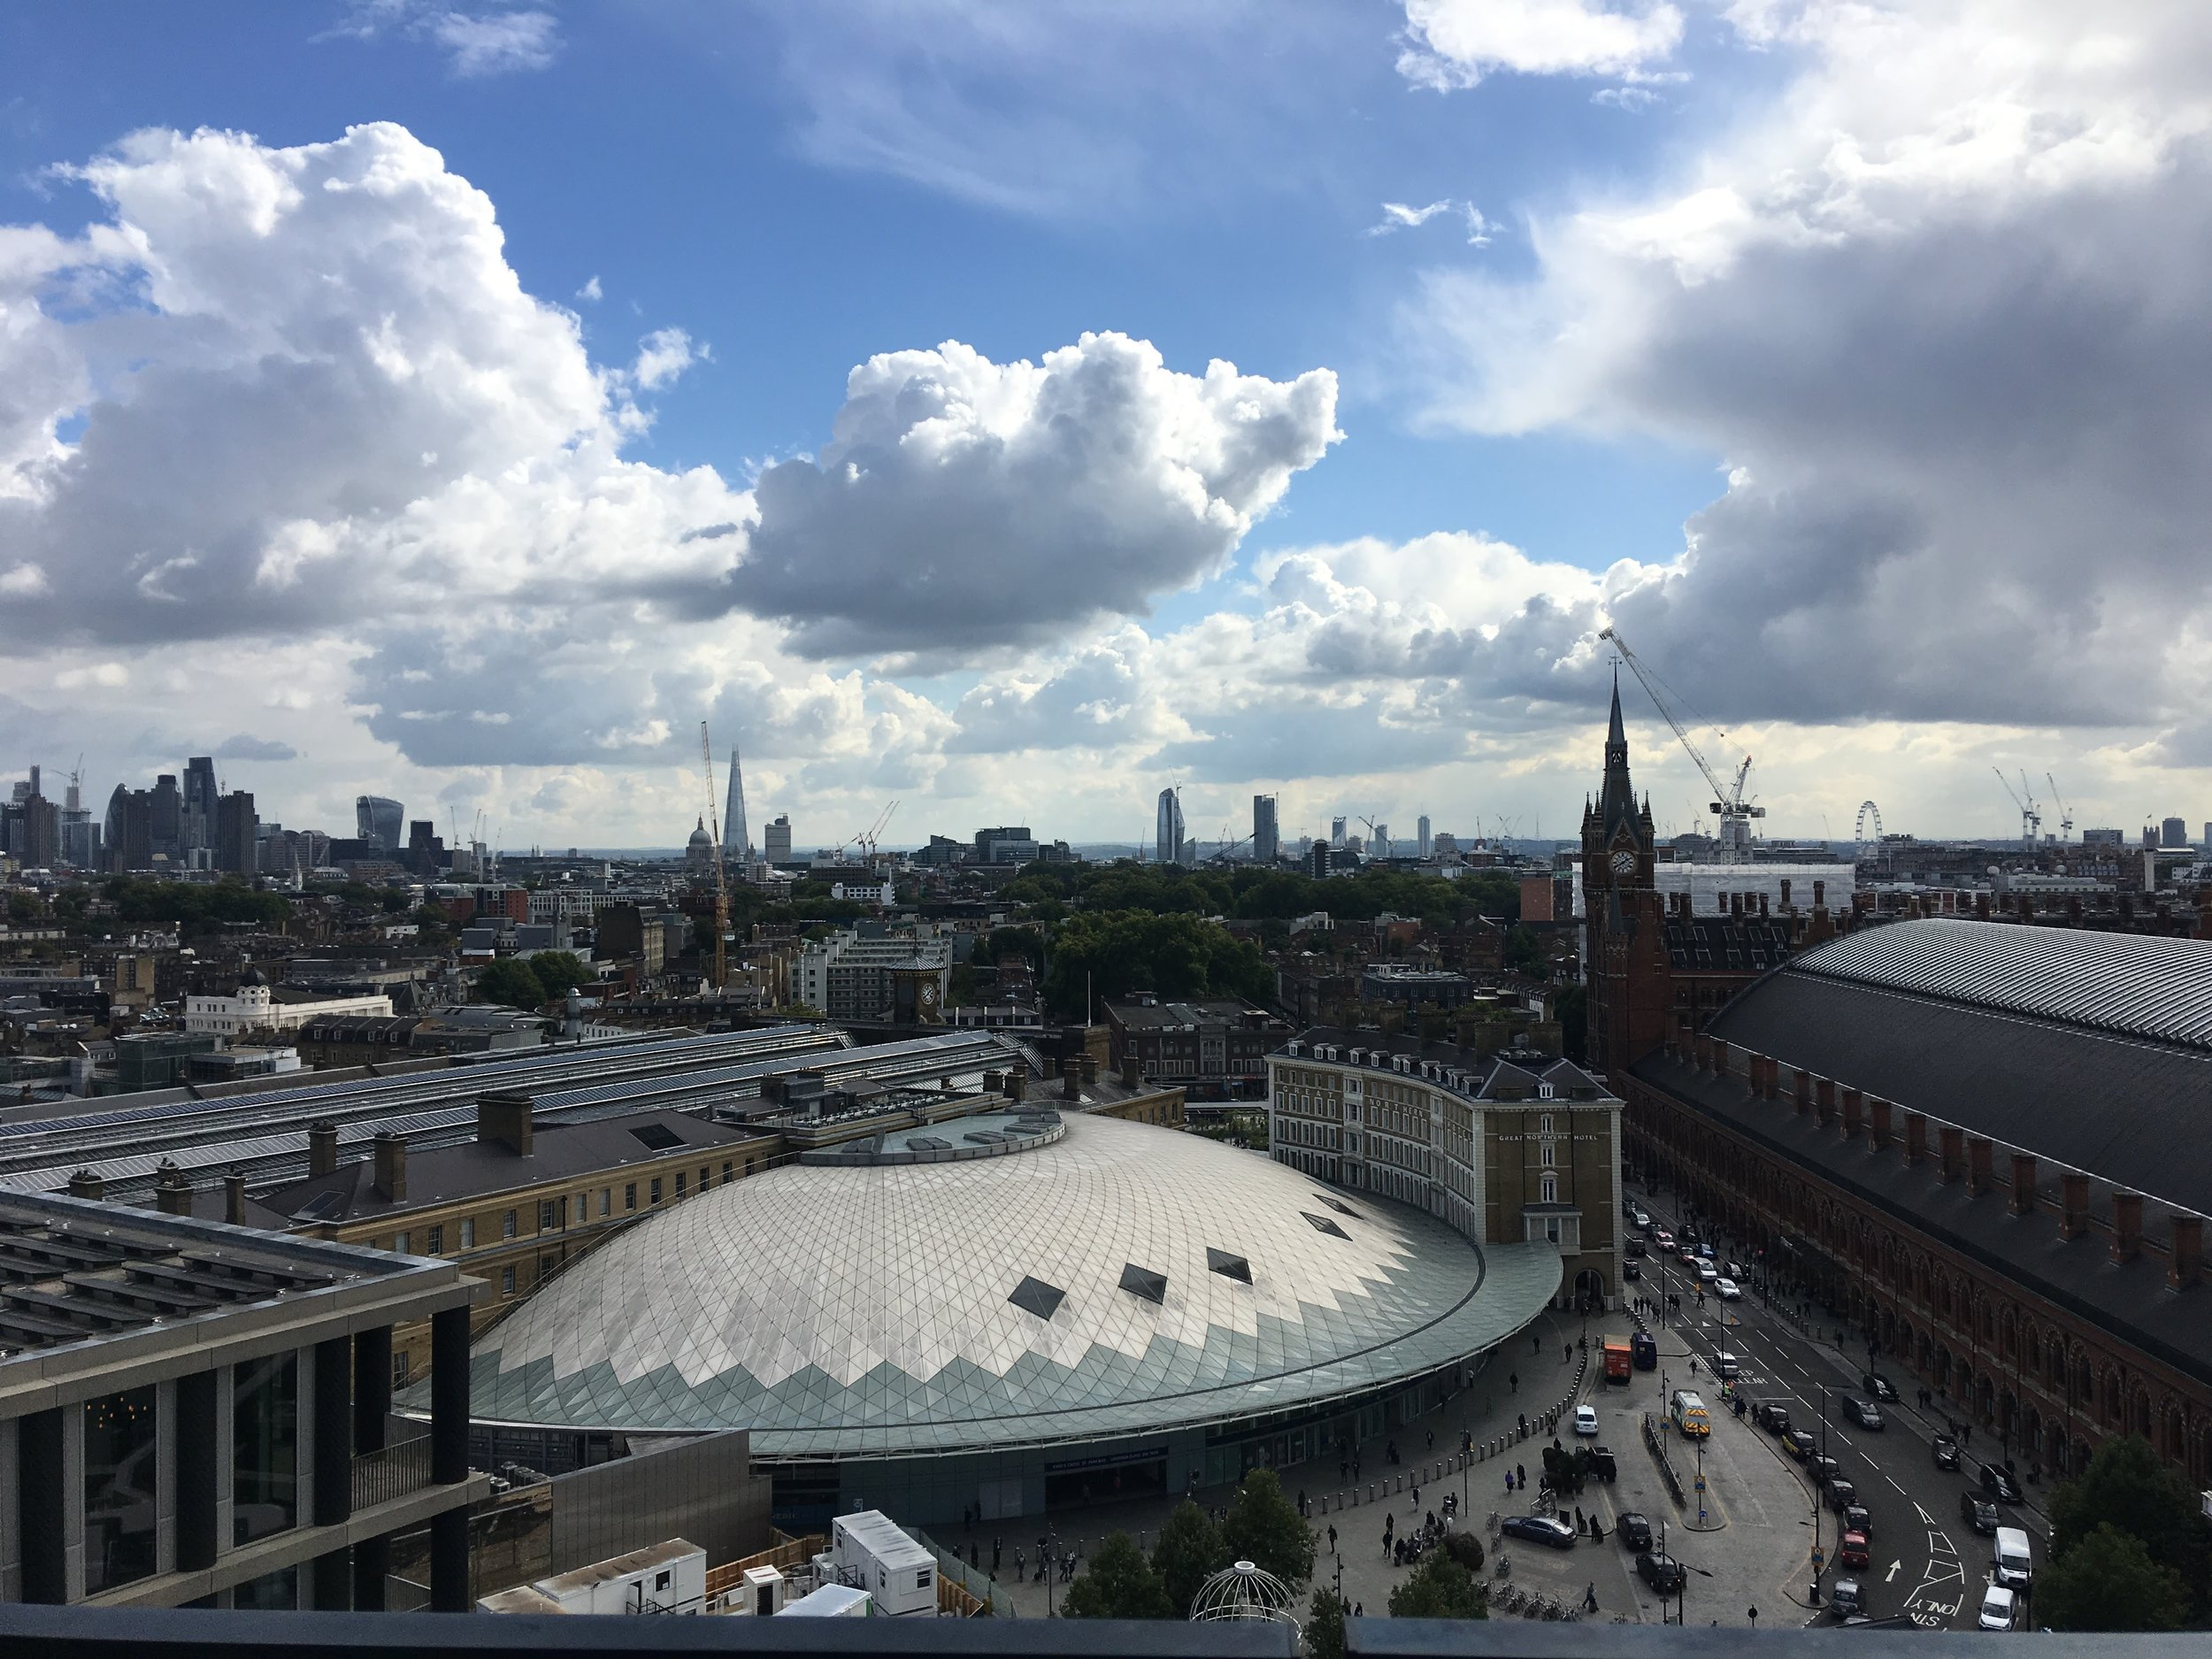 The best view in King's Cross